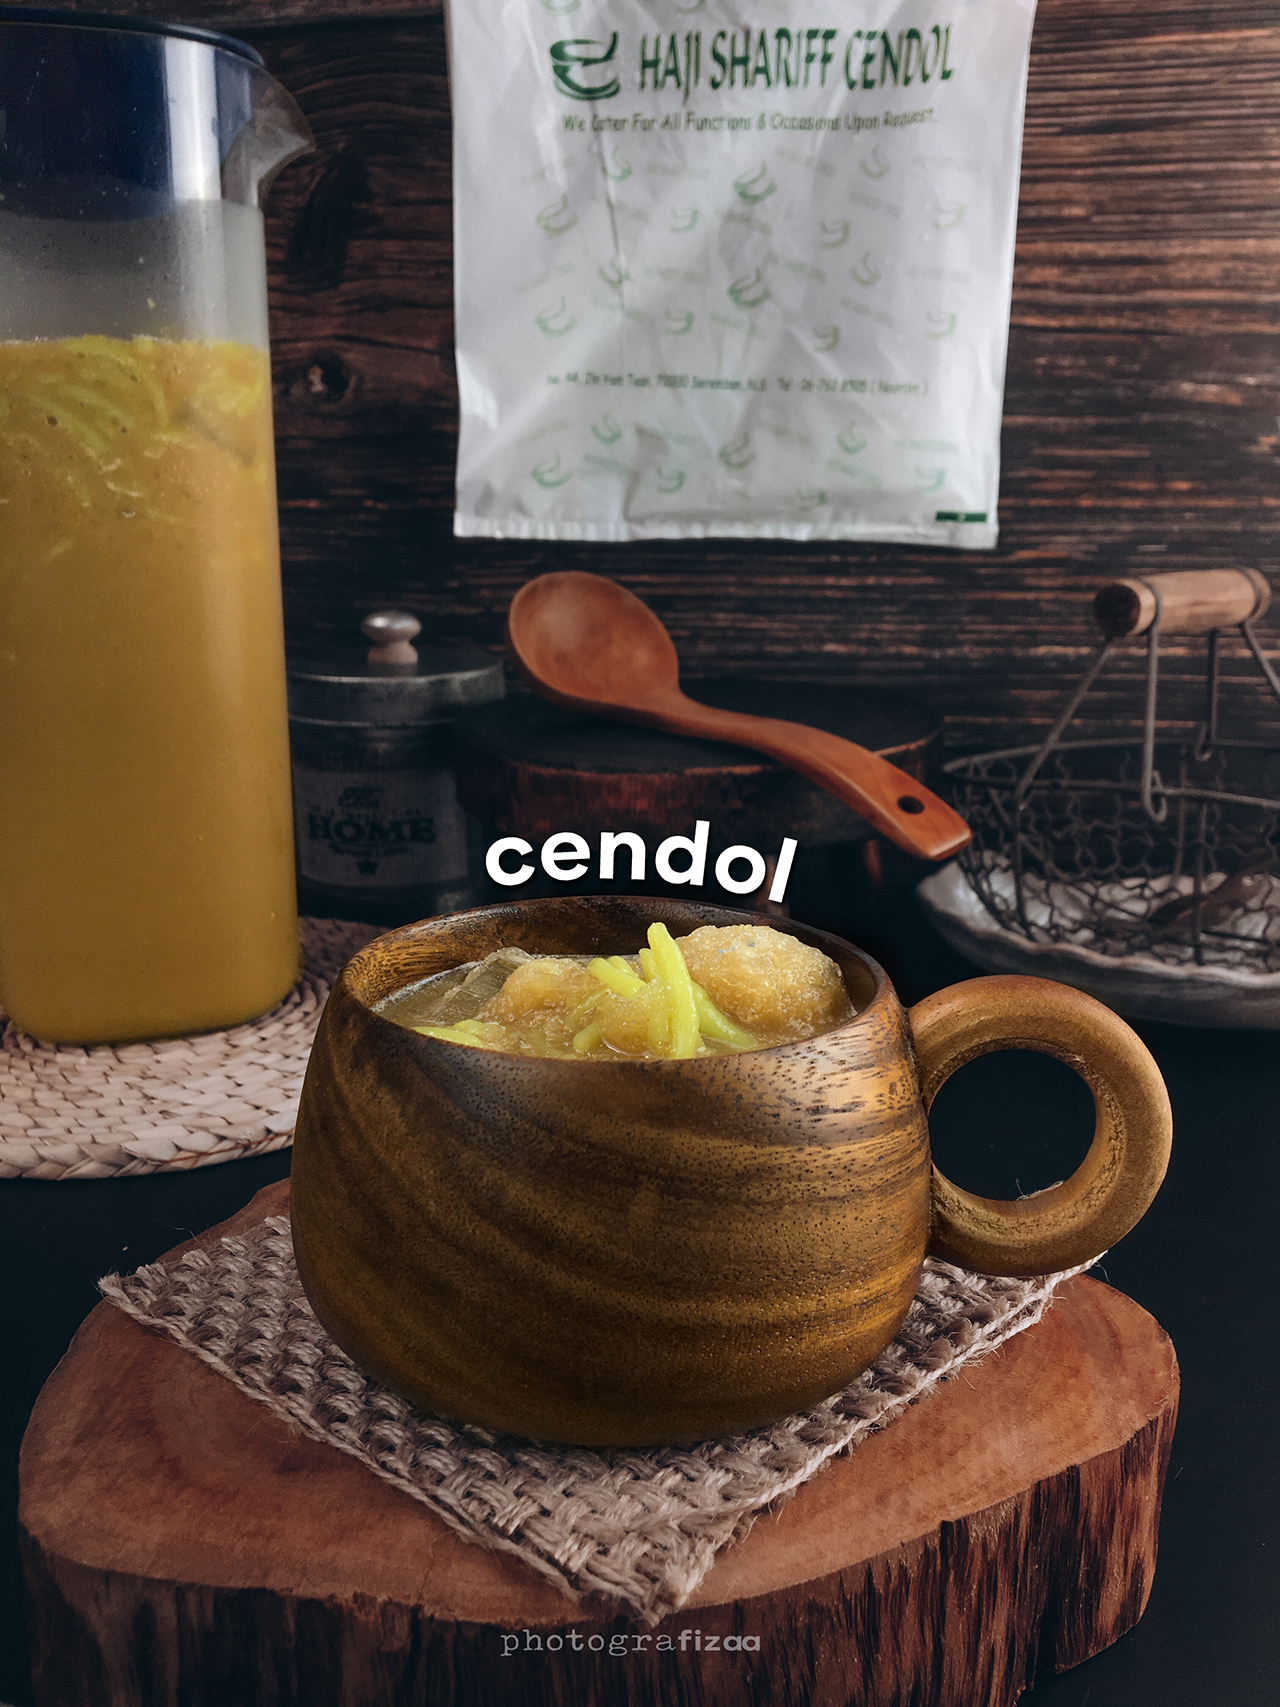 Cendol Haji Shariff